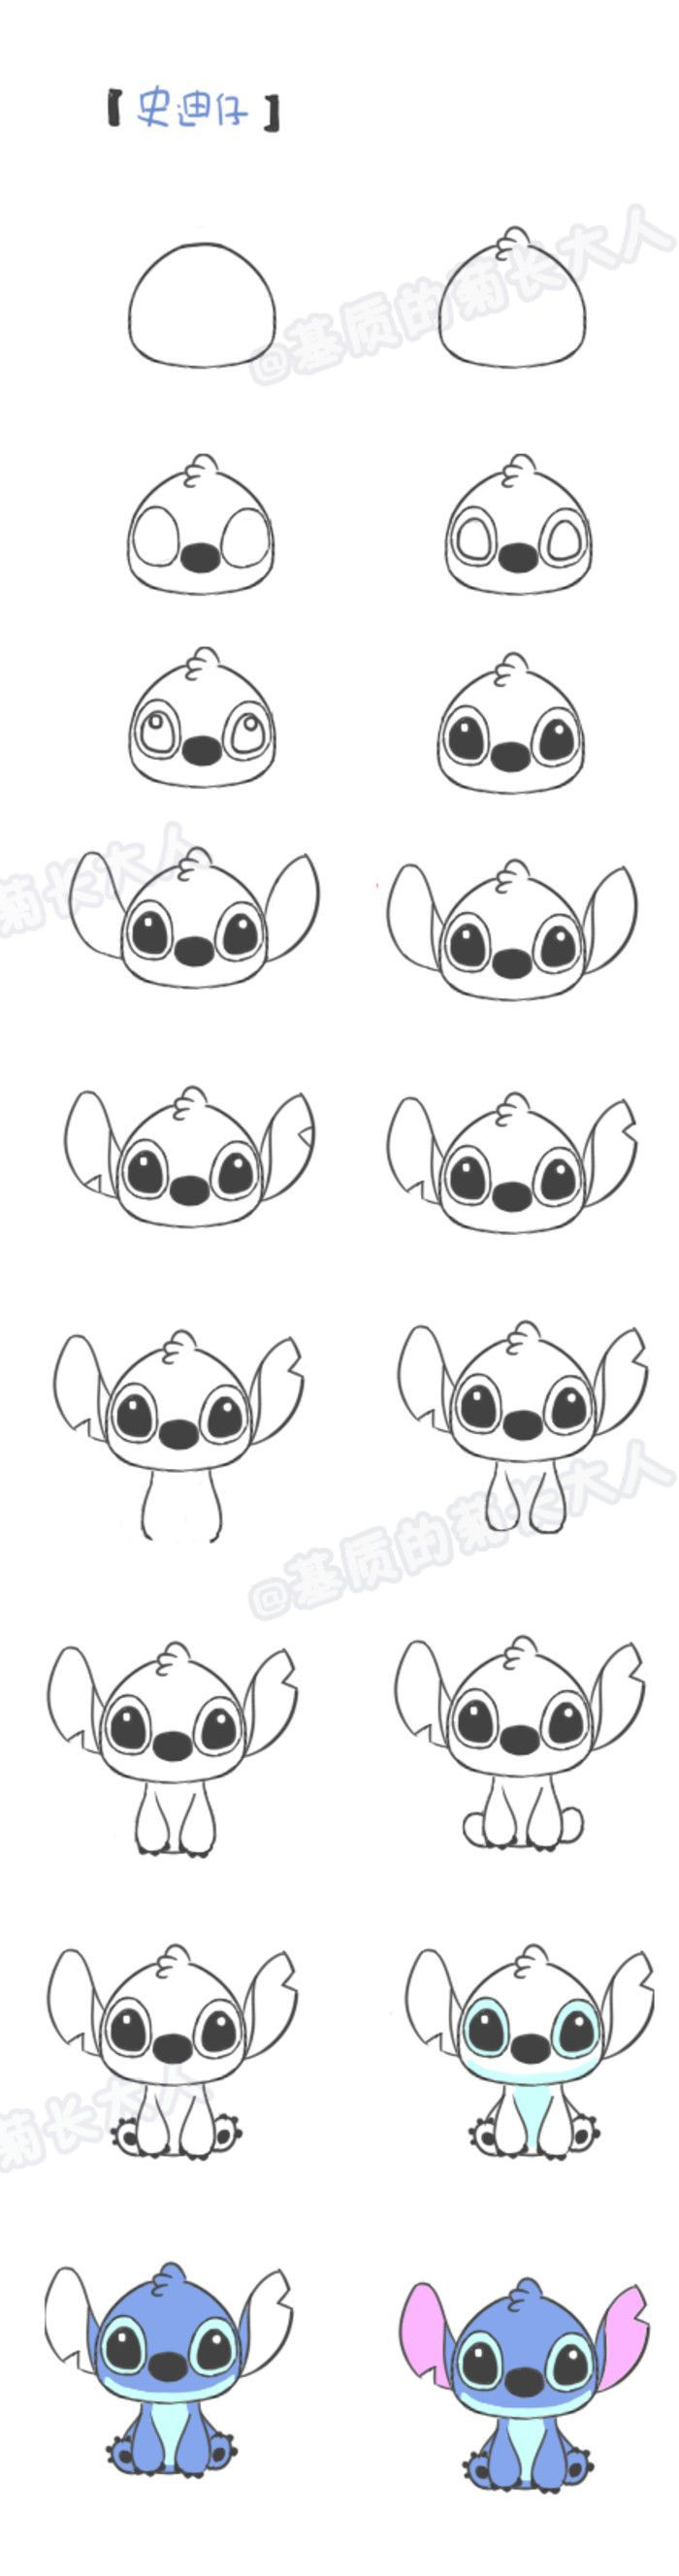 Uncategorized Disney Drawings Step By Step how to draw stitch diy art disney pinterest drawings and drawing ideas